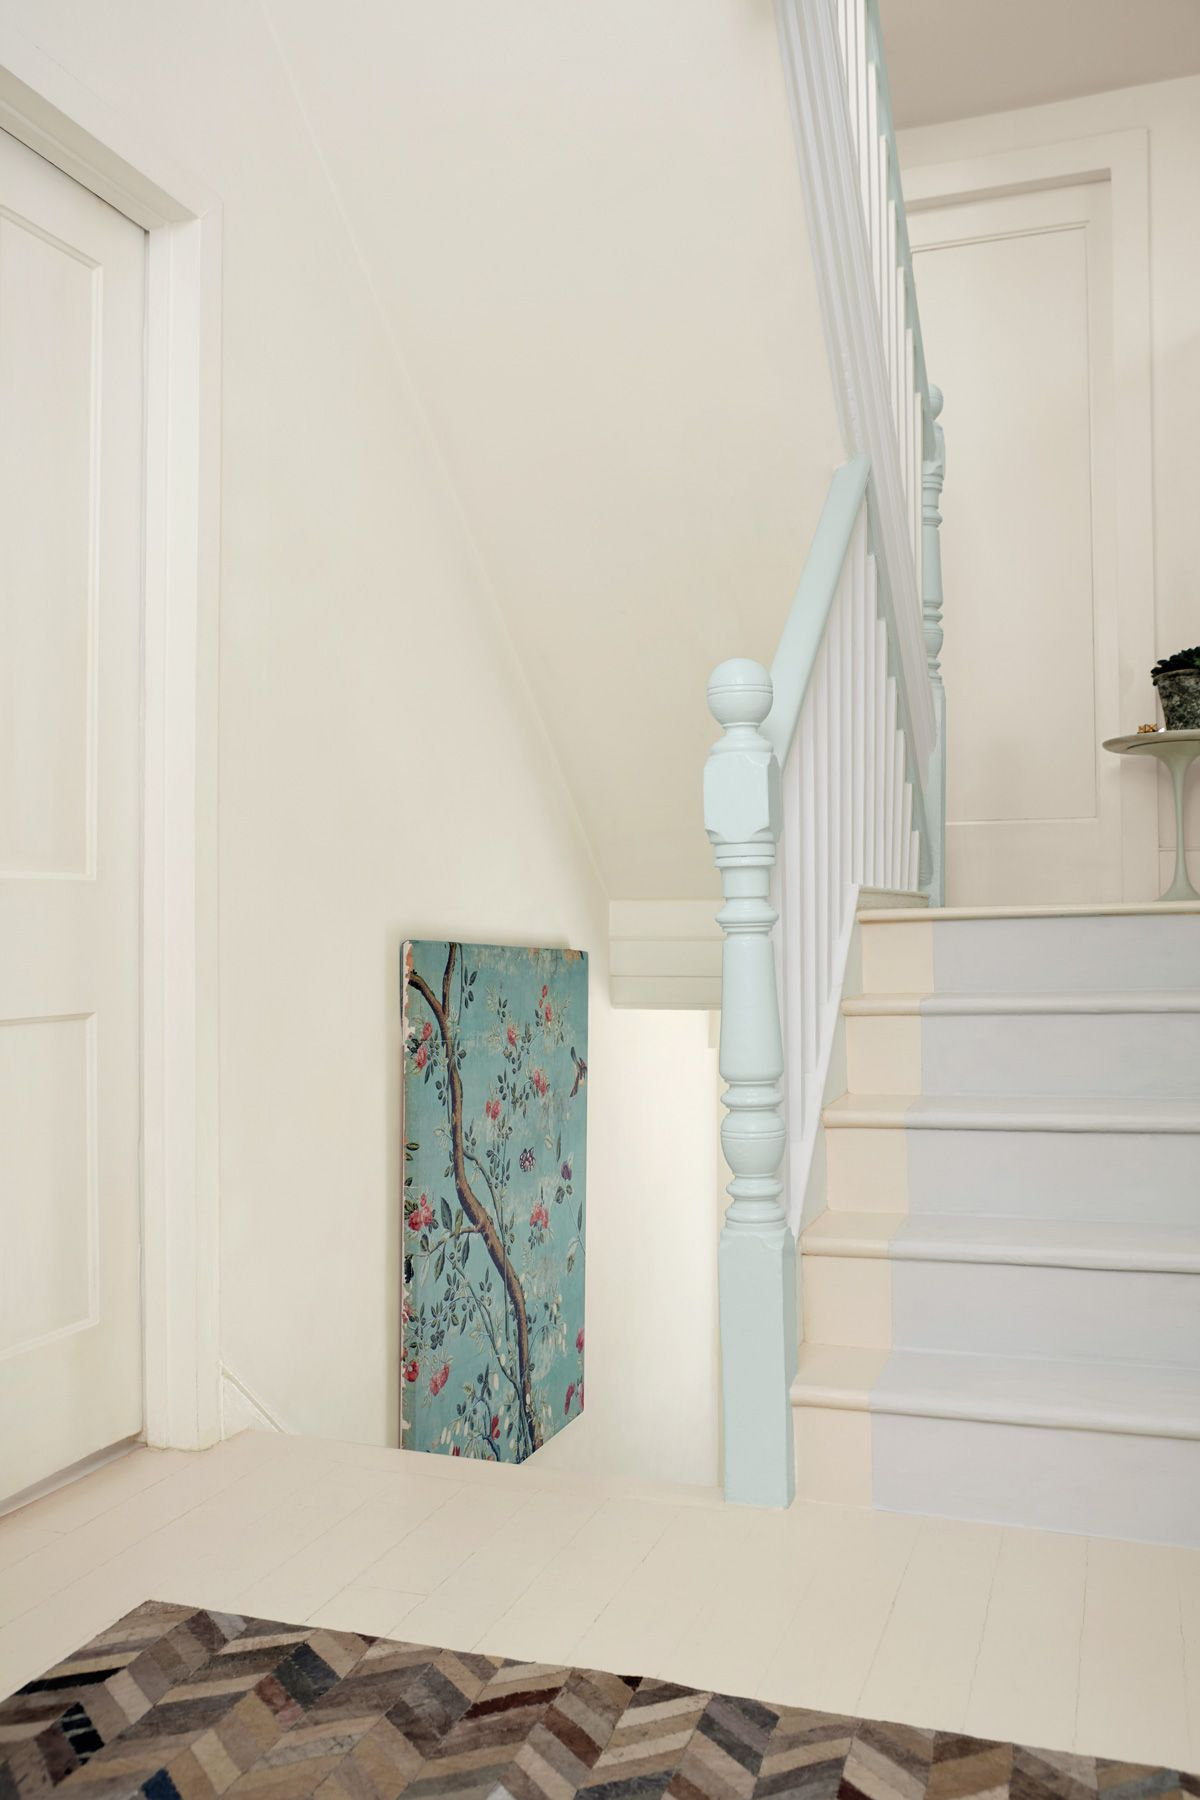 Dulux - Inspiration, advice and information about decorating with ...